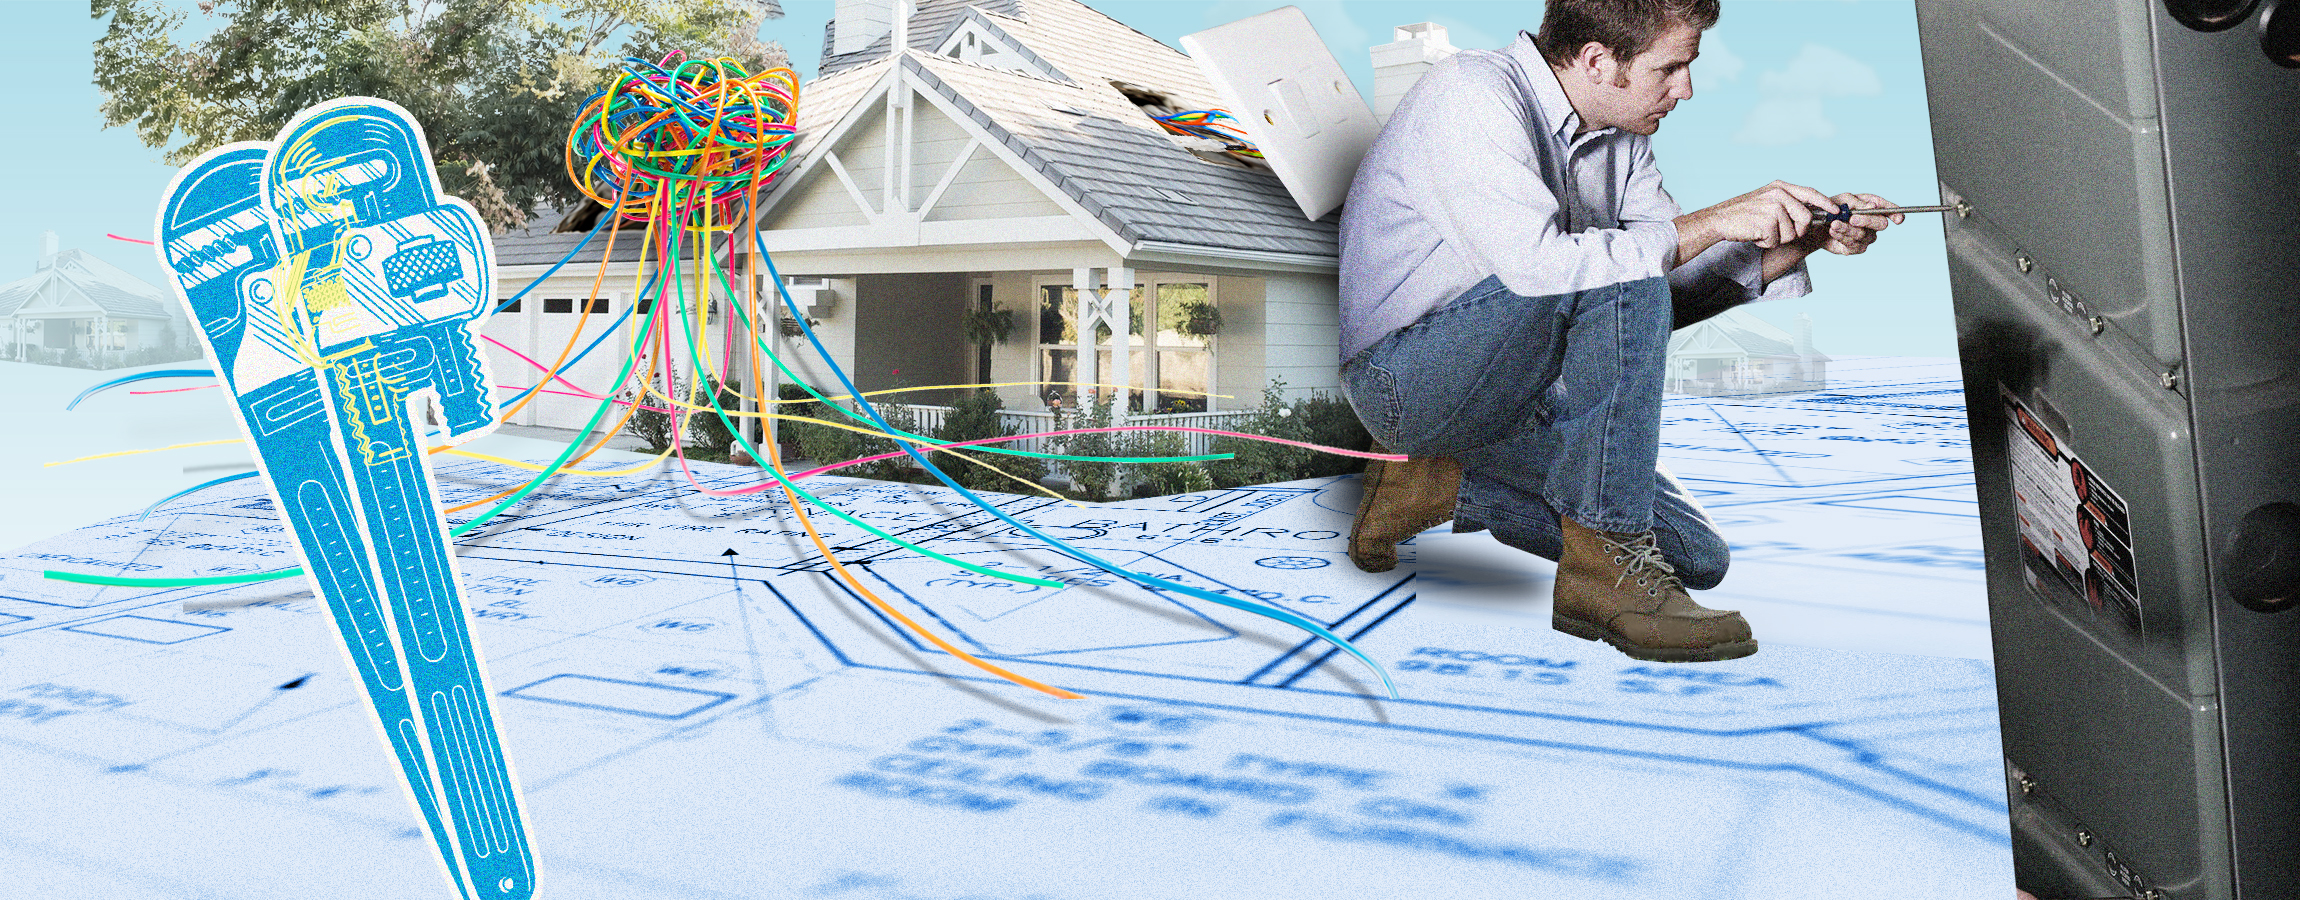 5 Home Repairs You Should Never Do Yourself Discover Residential Electrician In Toronto House Repair